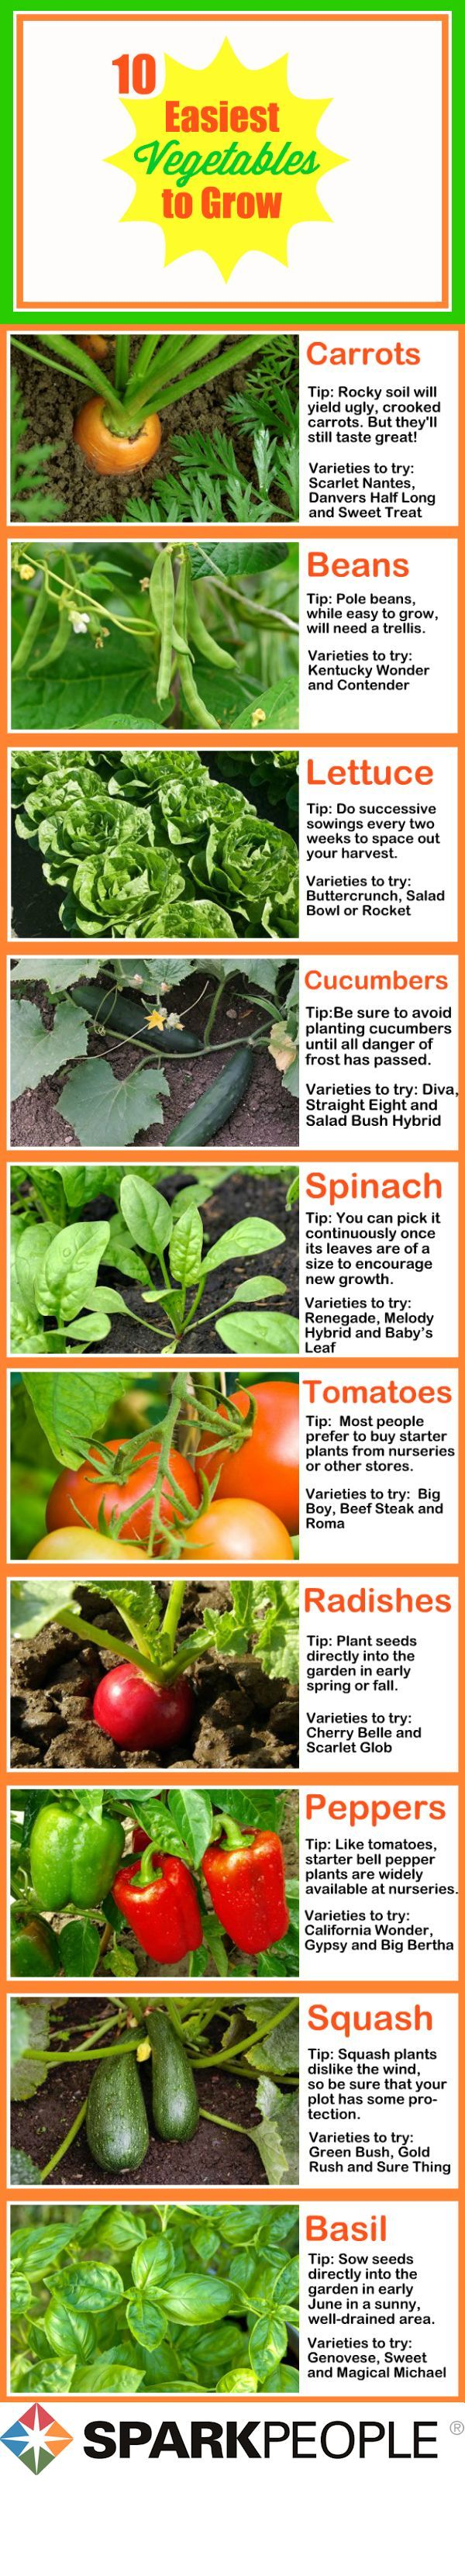 ~The 10 Easiest Vegetables to Grow~ SparkPeople